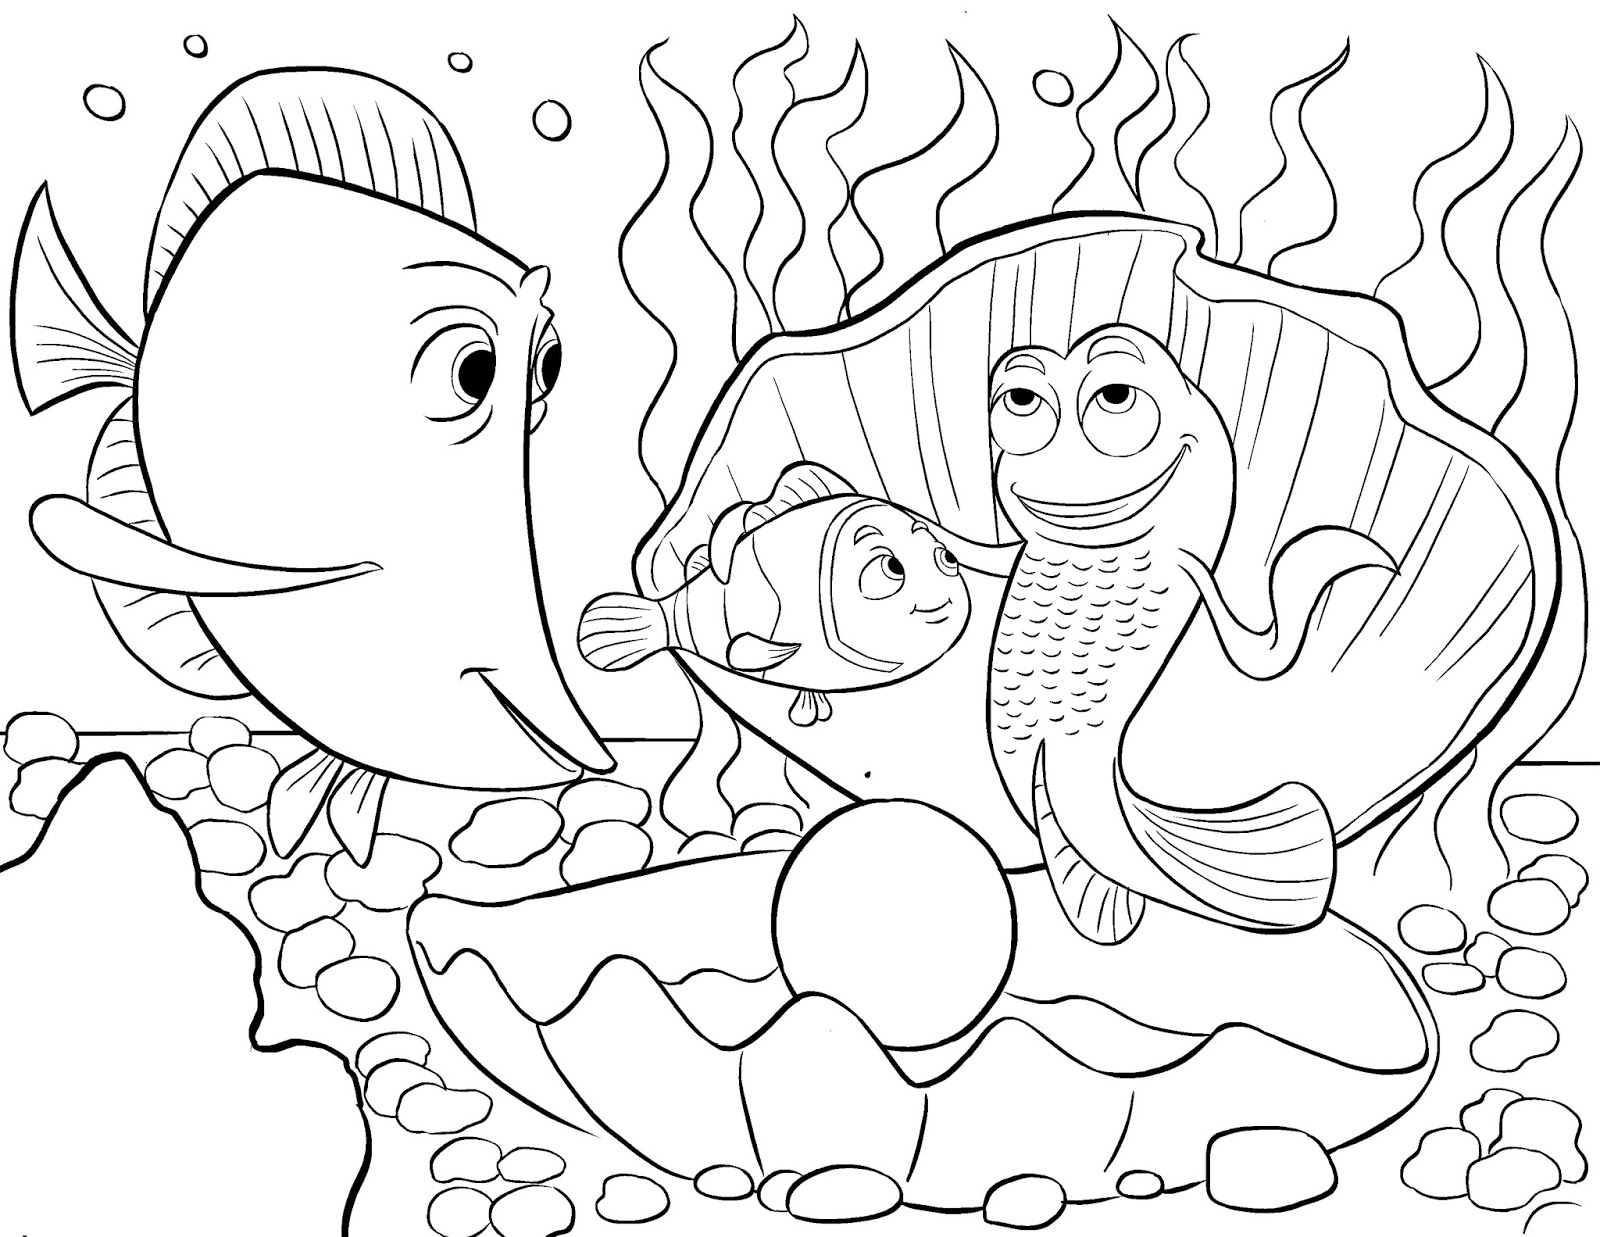 disney coloring pictures for kids - Crush Finding Nemo Coloring Pages